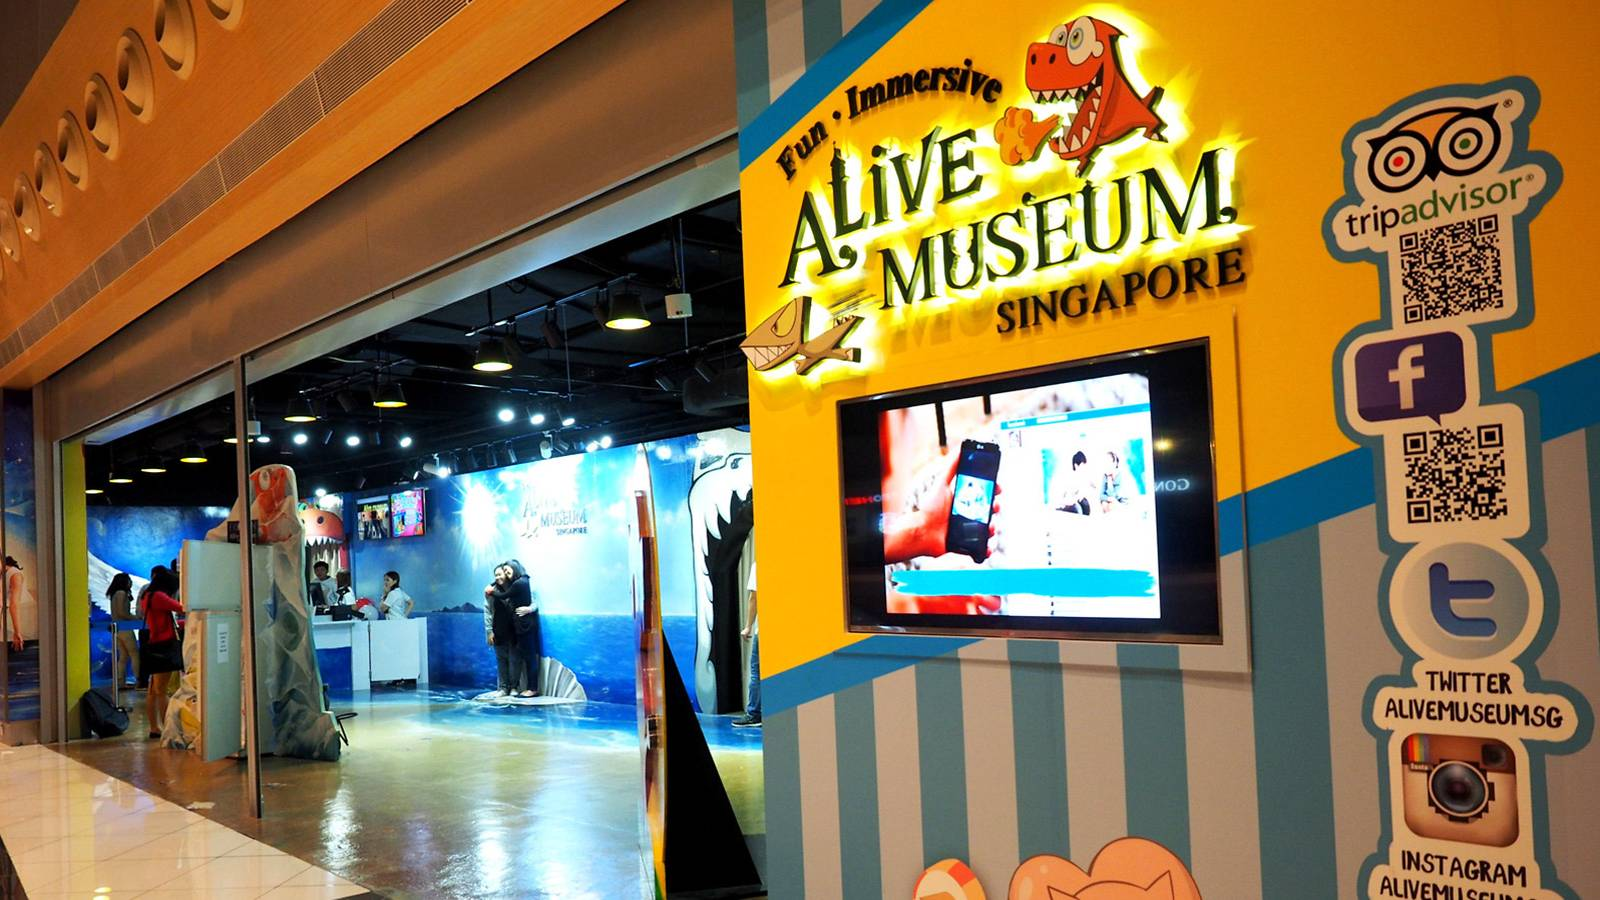 Kids---50-fantastically-fun-things-to-do-this-year-end-alive-museum